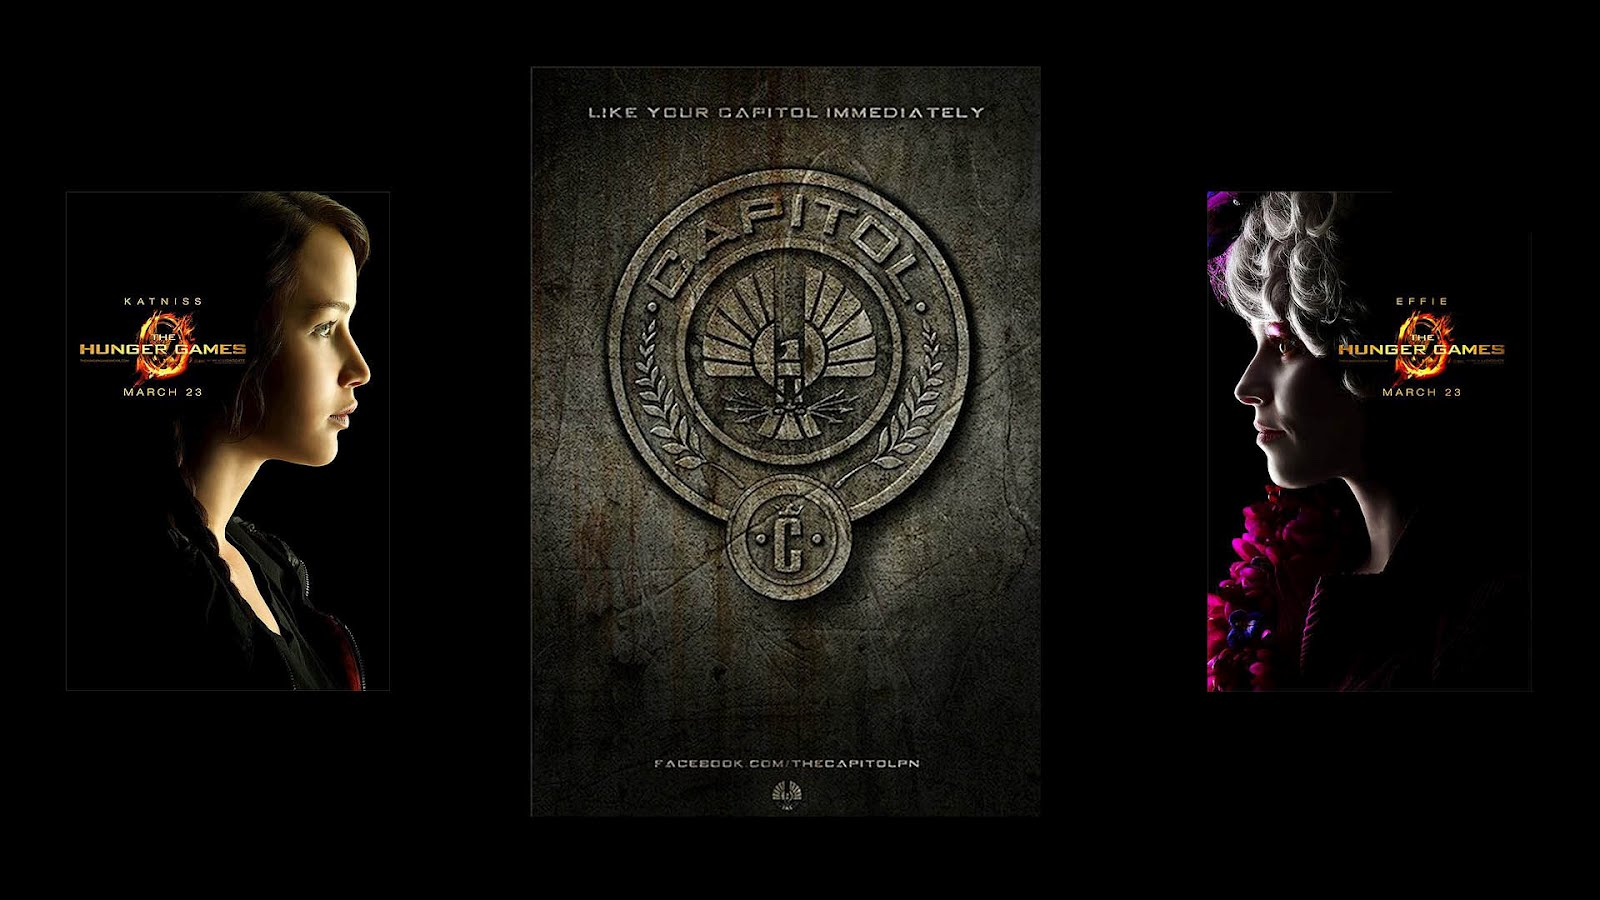 The Hunger Games Wallpaper   Natural vs Makeup MoovieWatch 1600x900